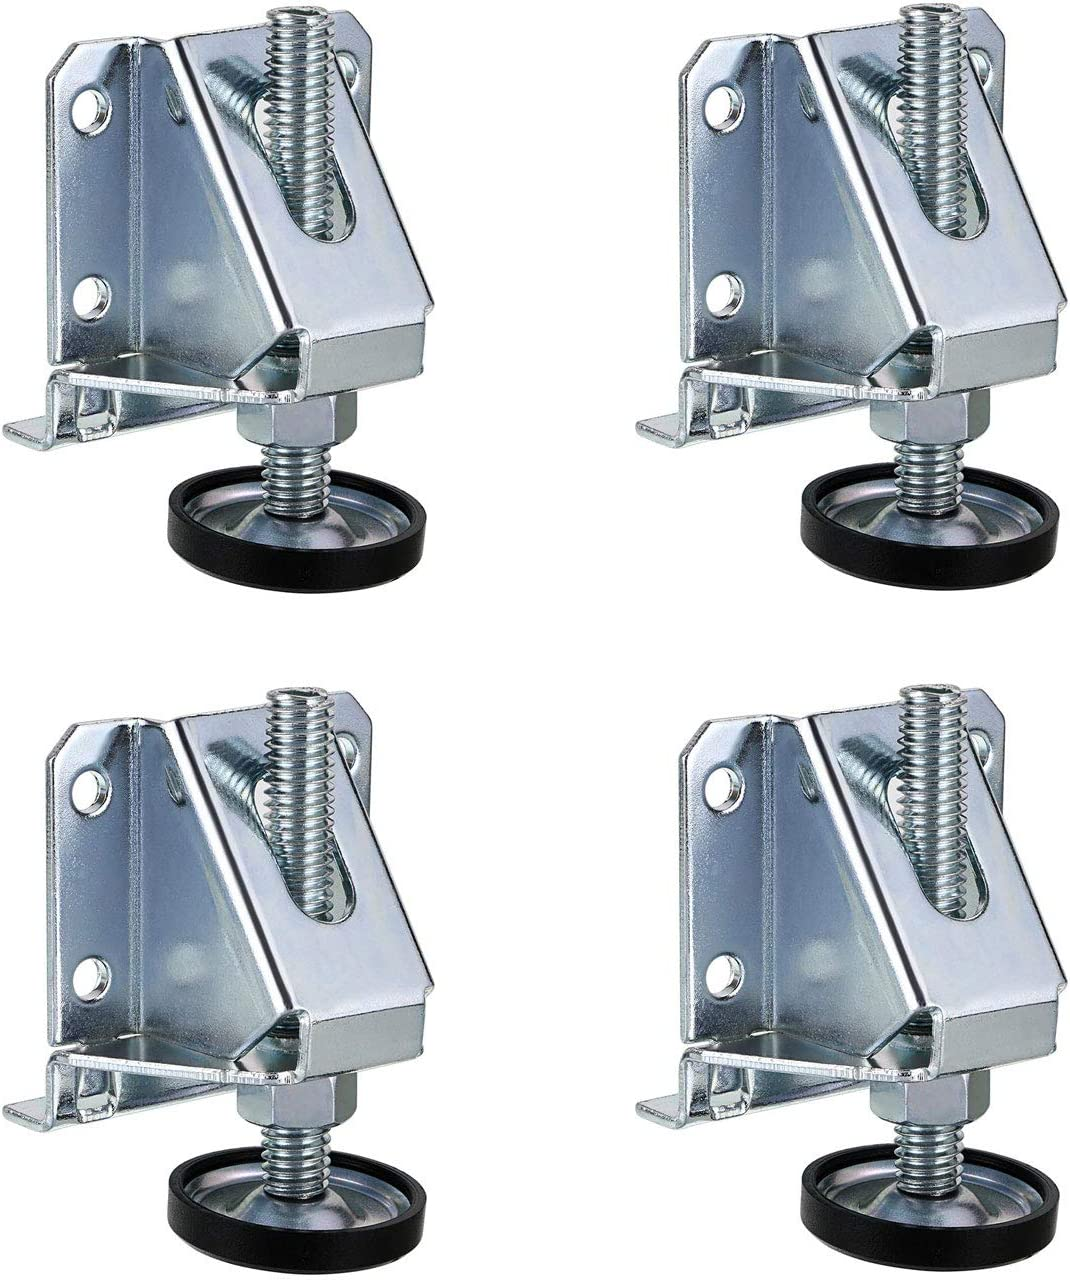 "Tulead Leveling Feet 3"" Hight Adjustable Legs Leg Leveler Heavy Duty Furniture Leveling Foot 4PCS with Mounting Screws"